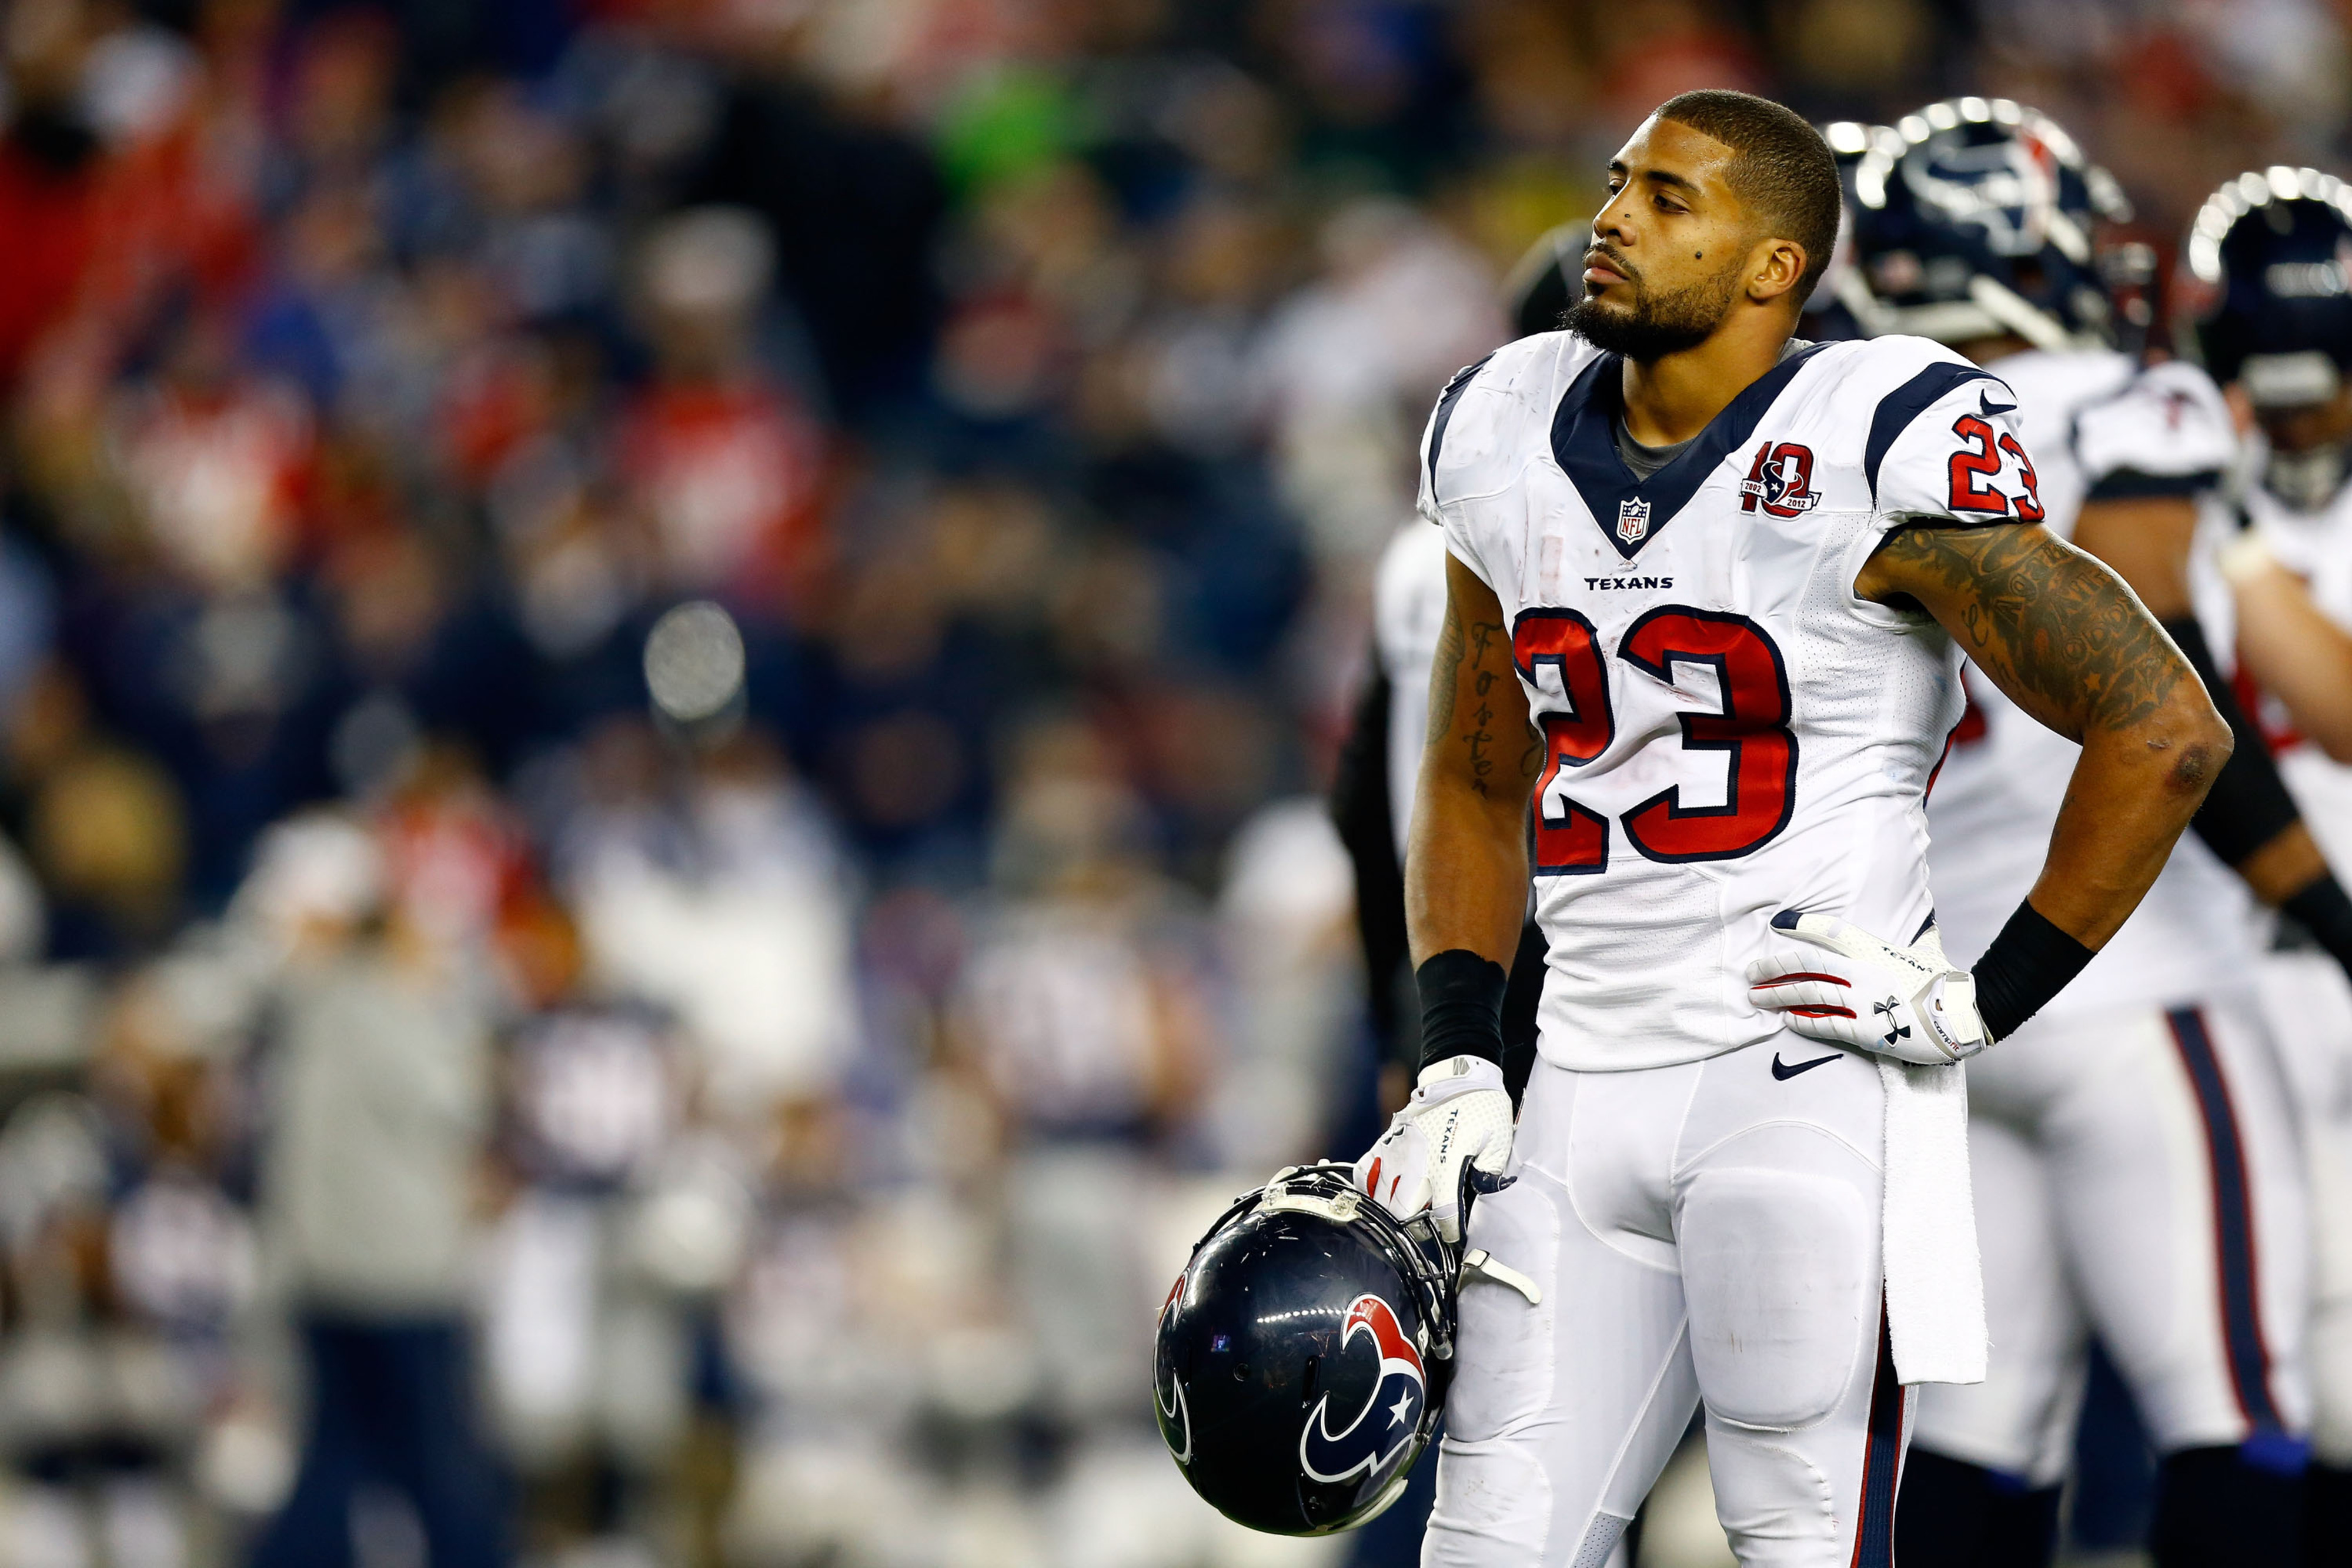 Arian Foster personifies all Texans fans